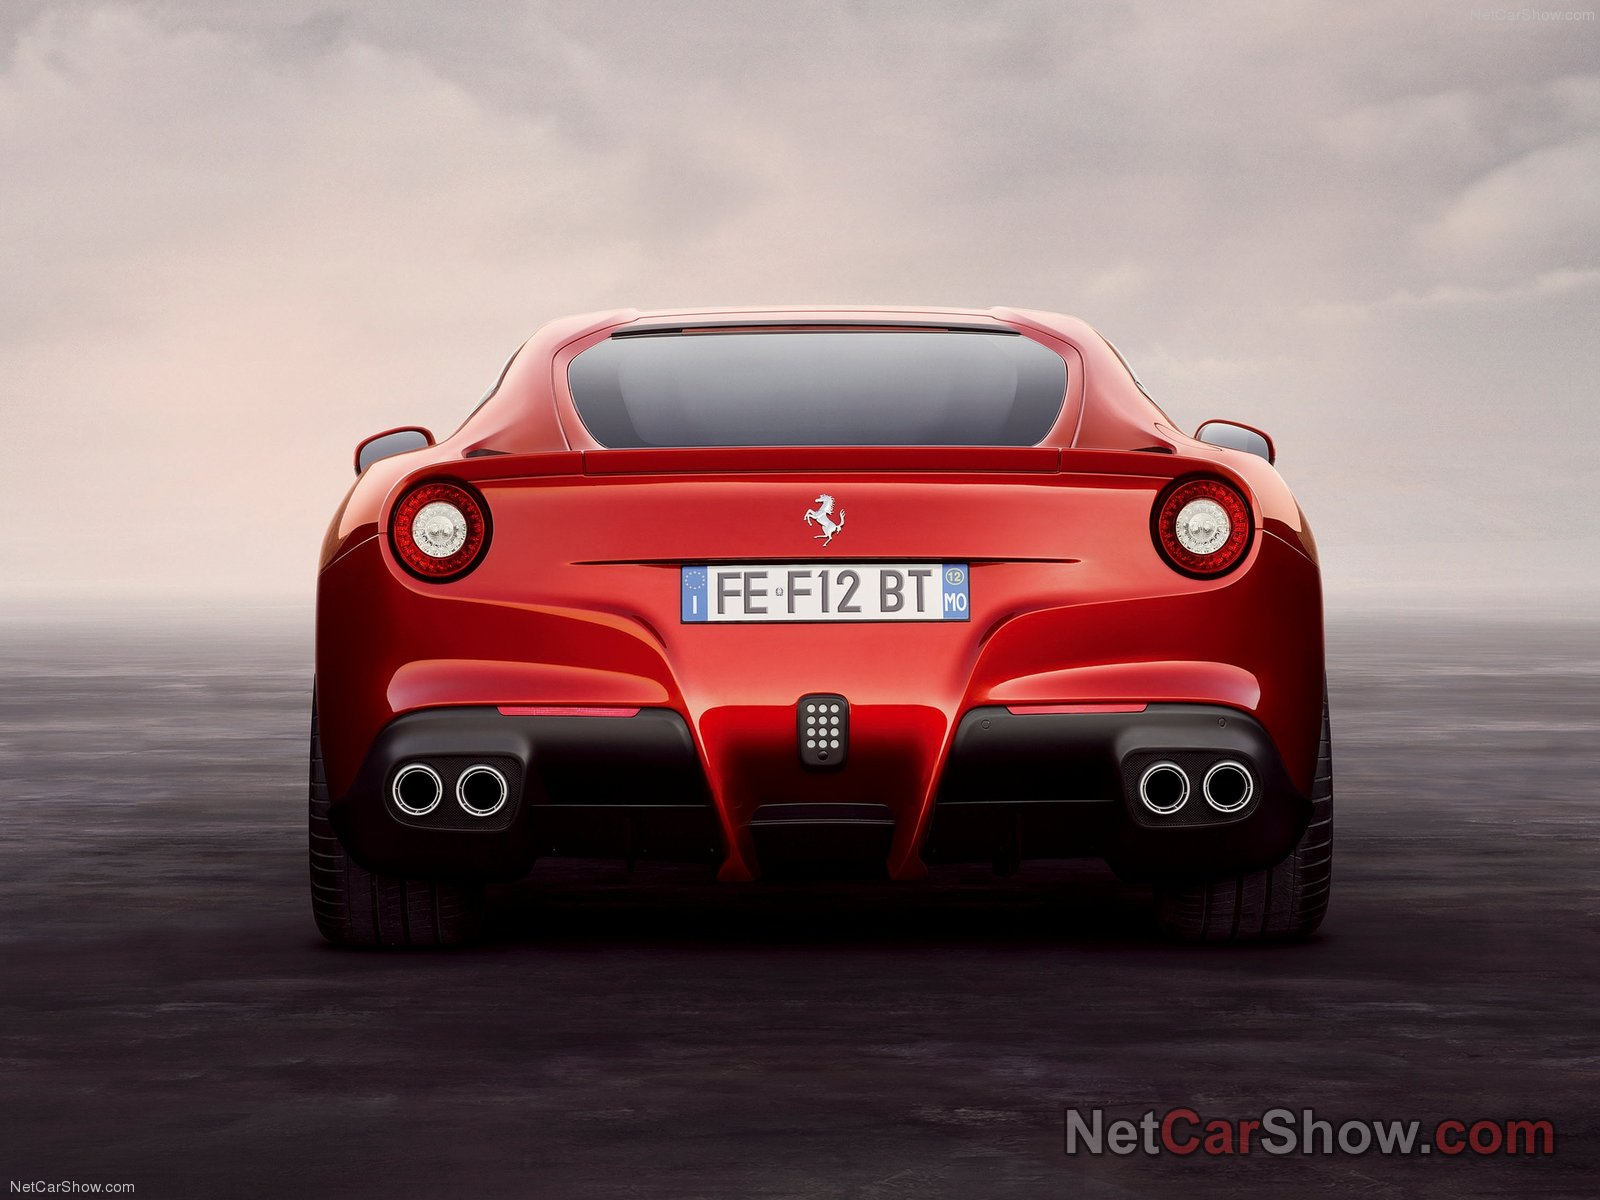 Ferrari F12 berlinetta photo 89370